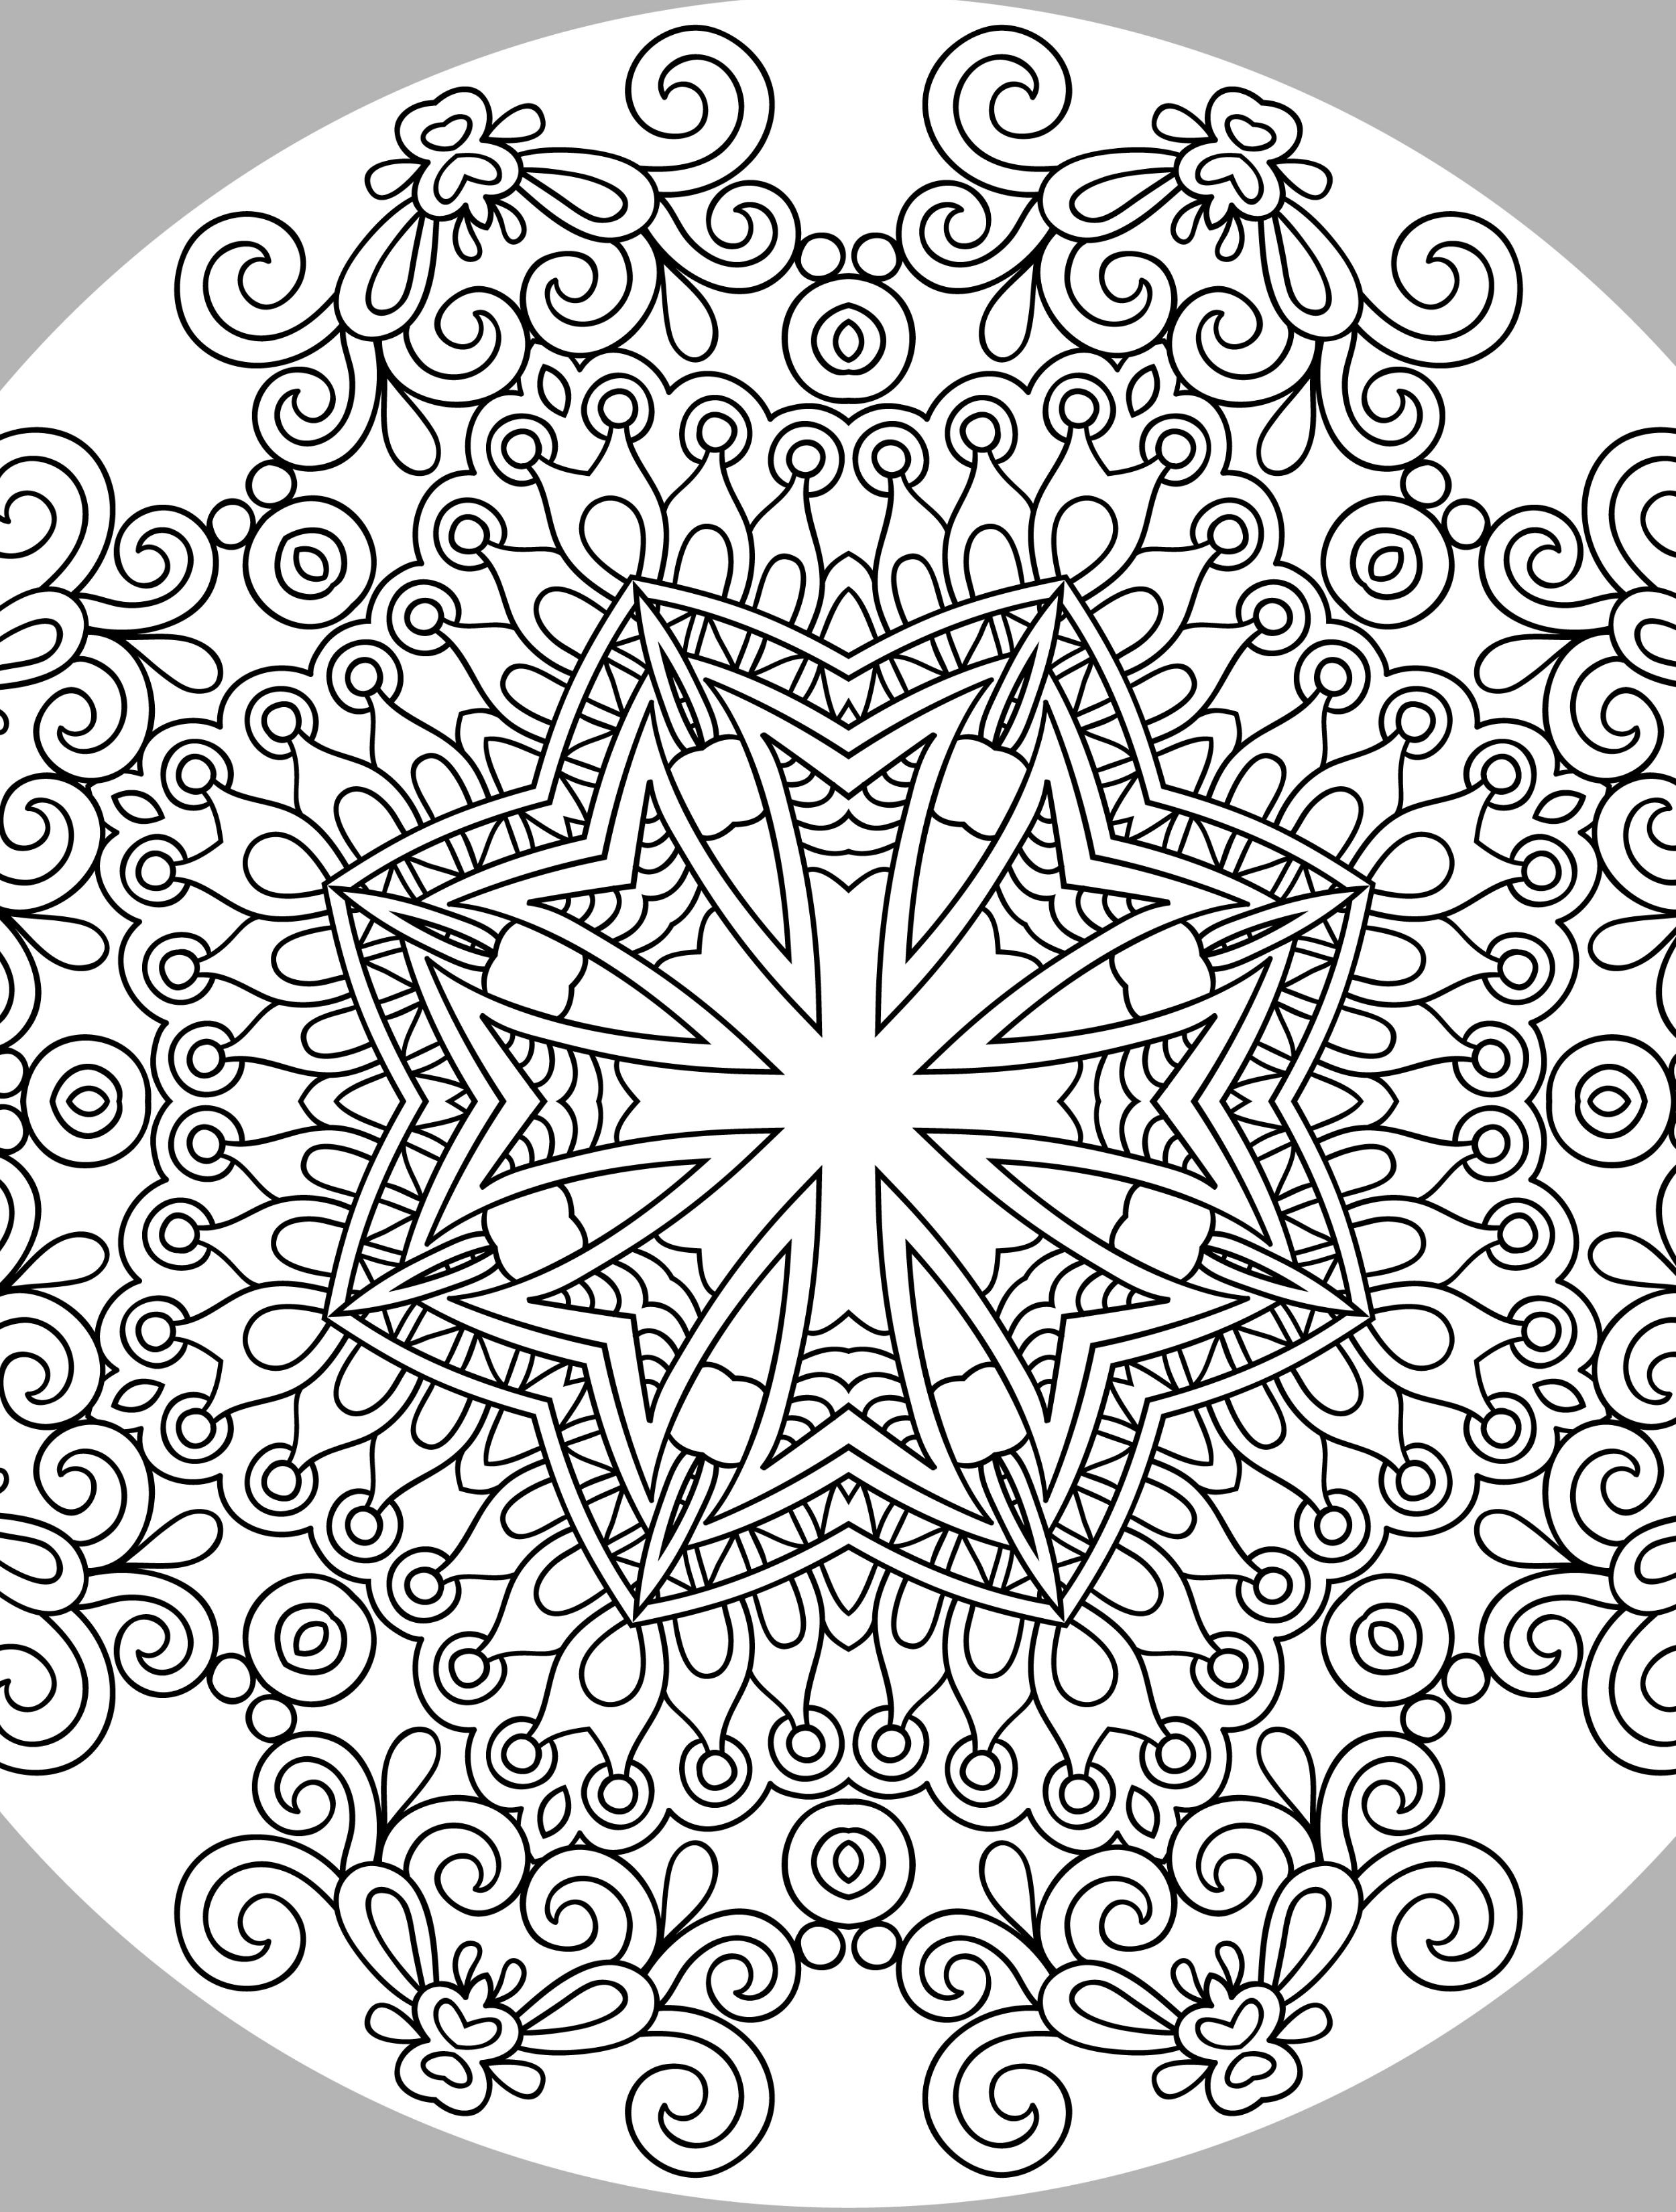 10 Free Printable Holiday Adult Coloring Pages | Printables | Adult - Free Printable Holiday Coloring Pages